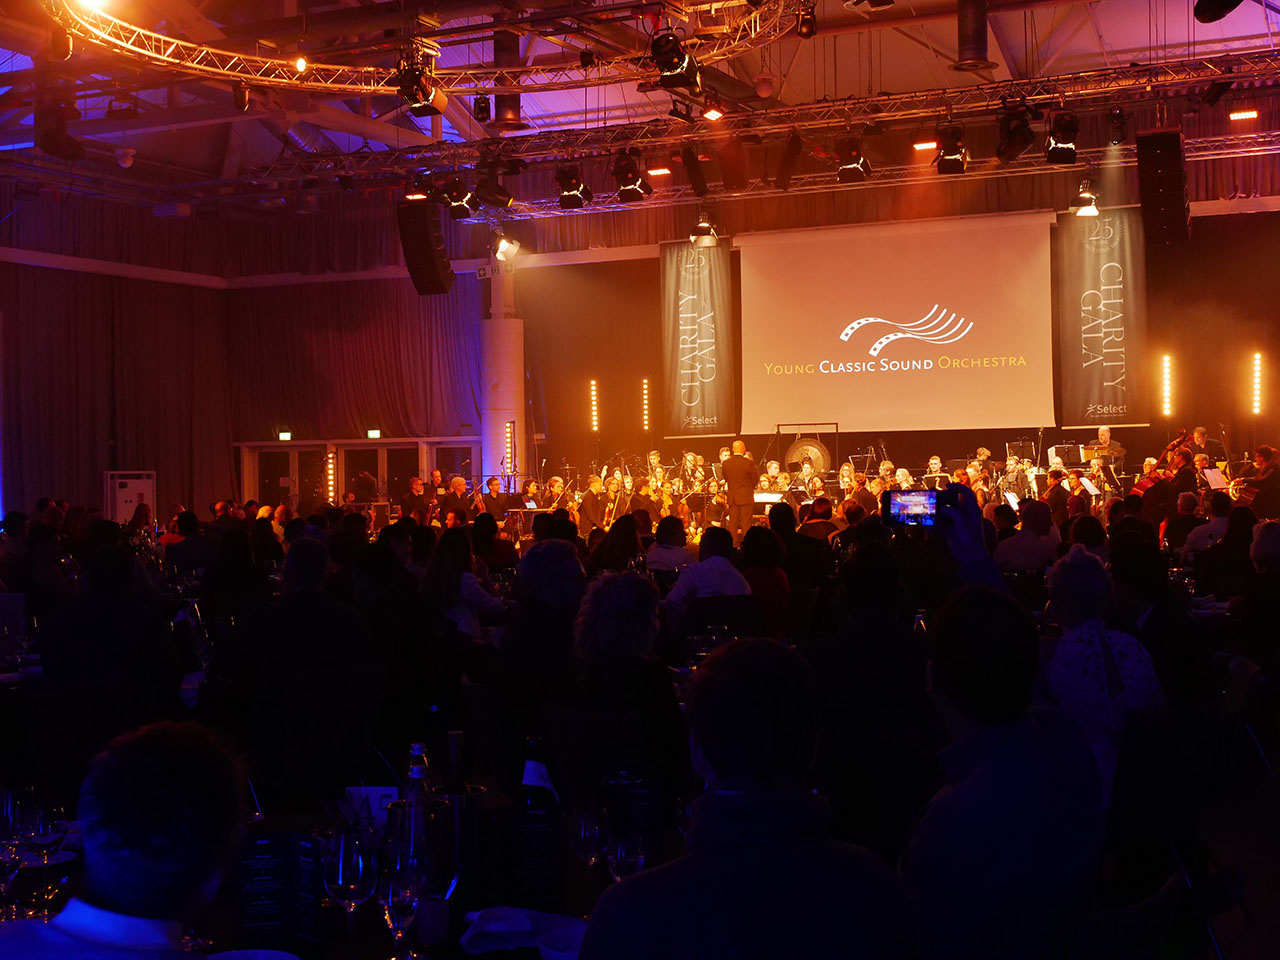 Young Classic Sound Orchestra auf der Select Charity Gala